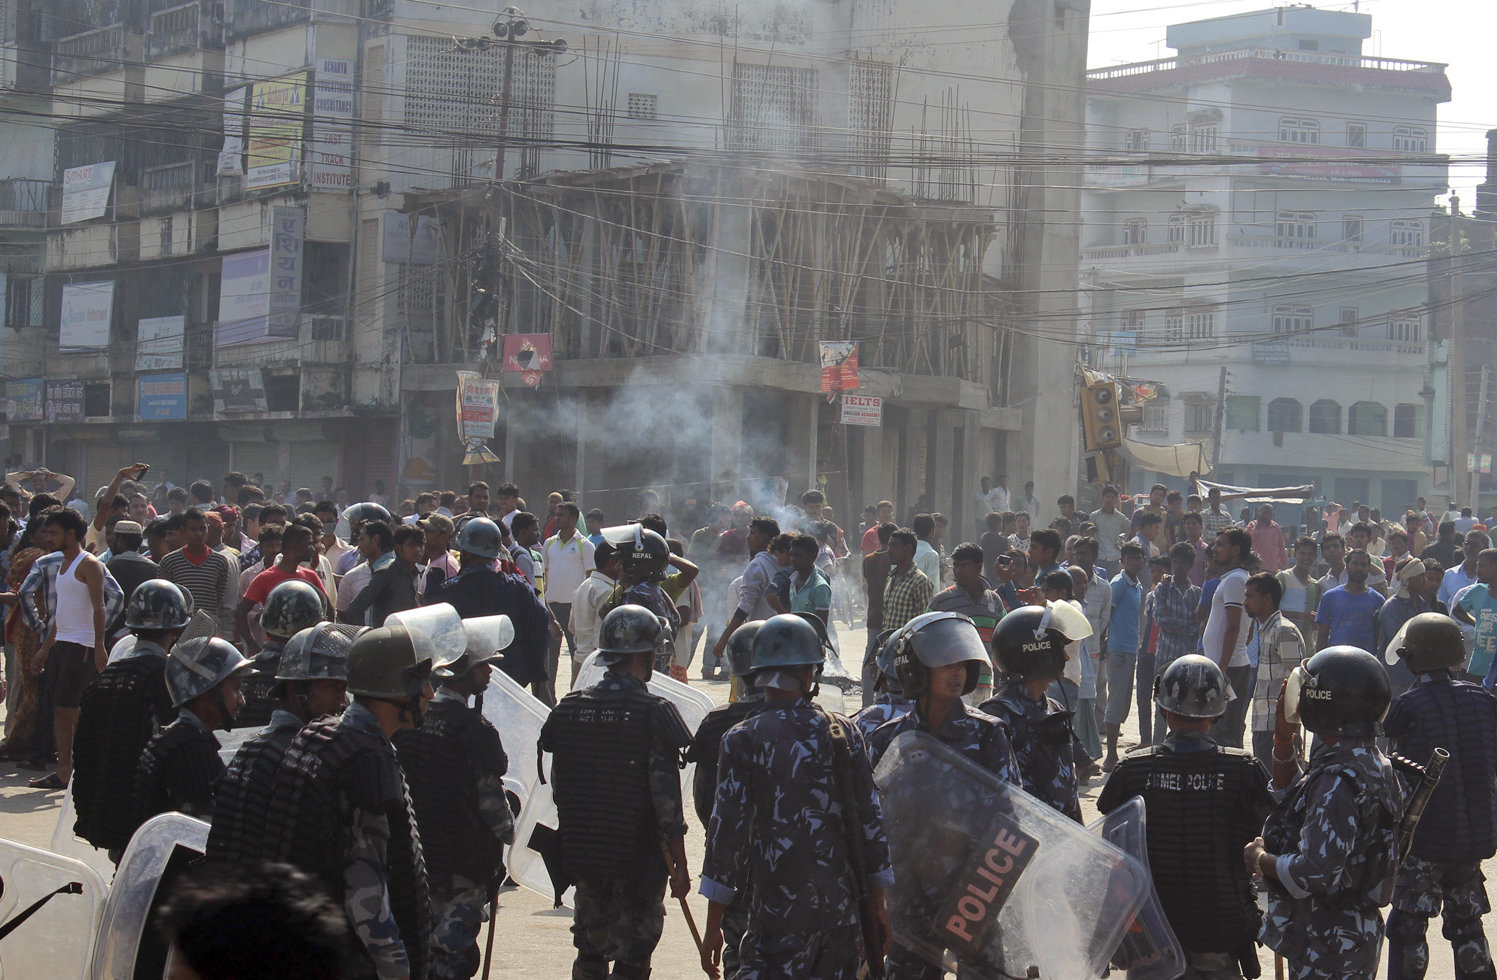 Ethnic Madhesi protesters stand near smoke from a tire set on fire by them, as Nepalese policemen stand guard near the Central Development Office at Birgunj, a town on the border with India, Nepal, Nov. 2, 2015.